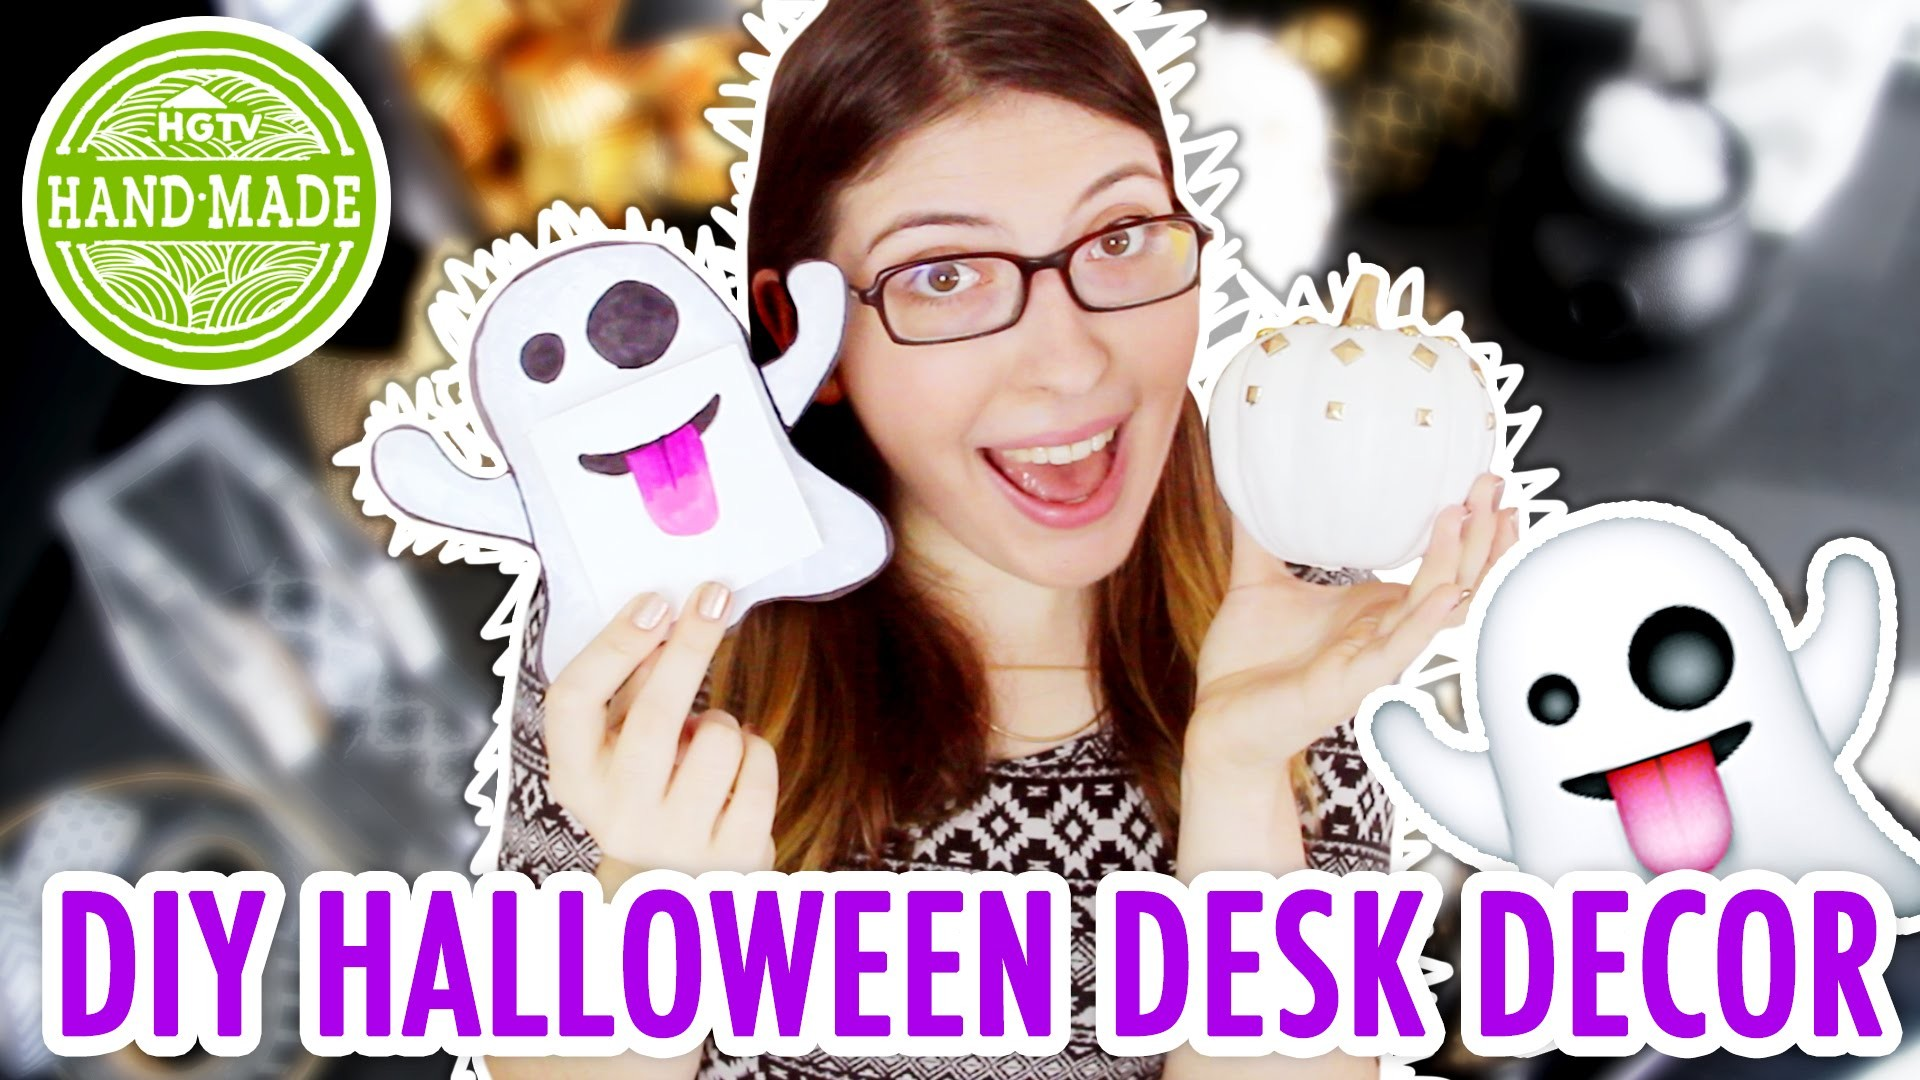 DIY Halloween Desk Decor! - HGTV Handmade